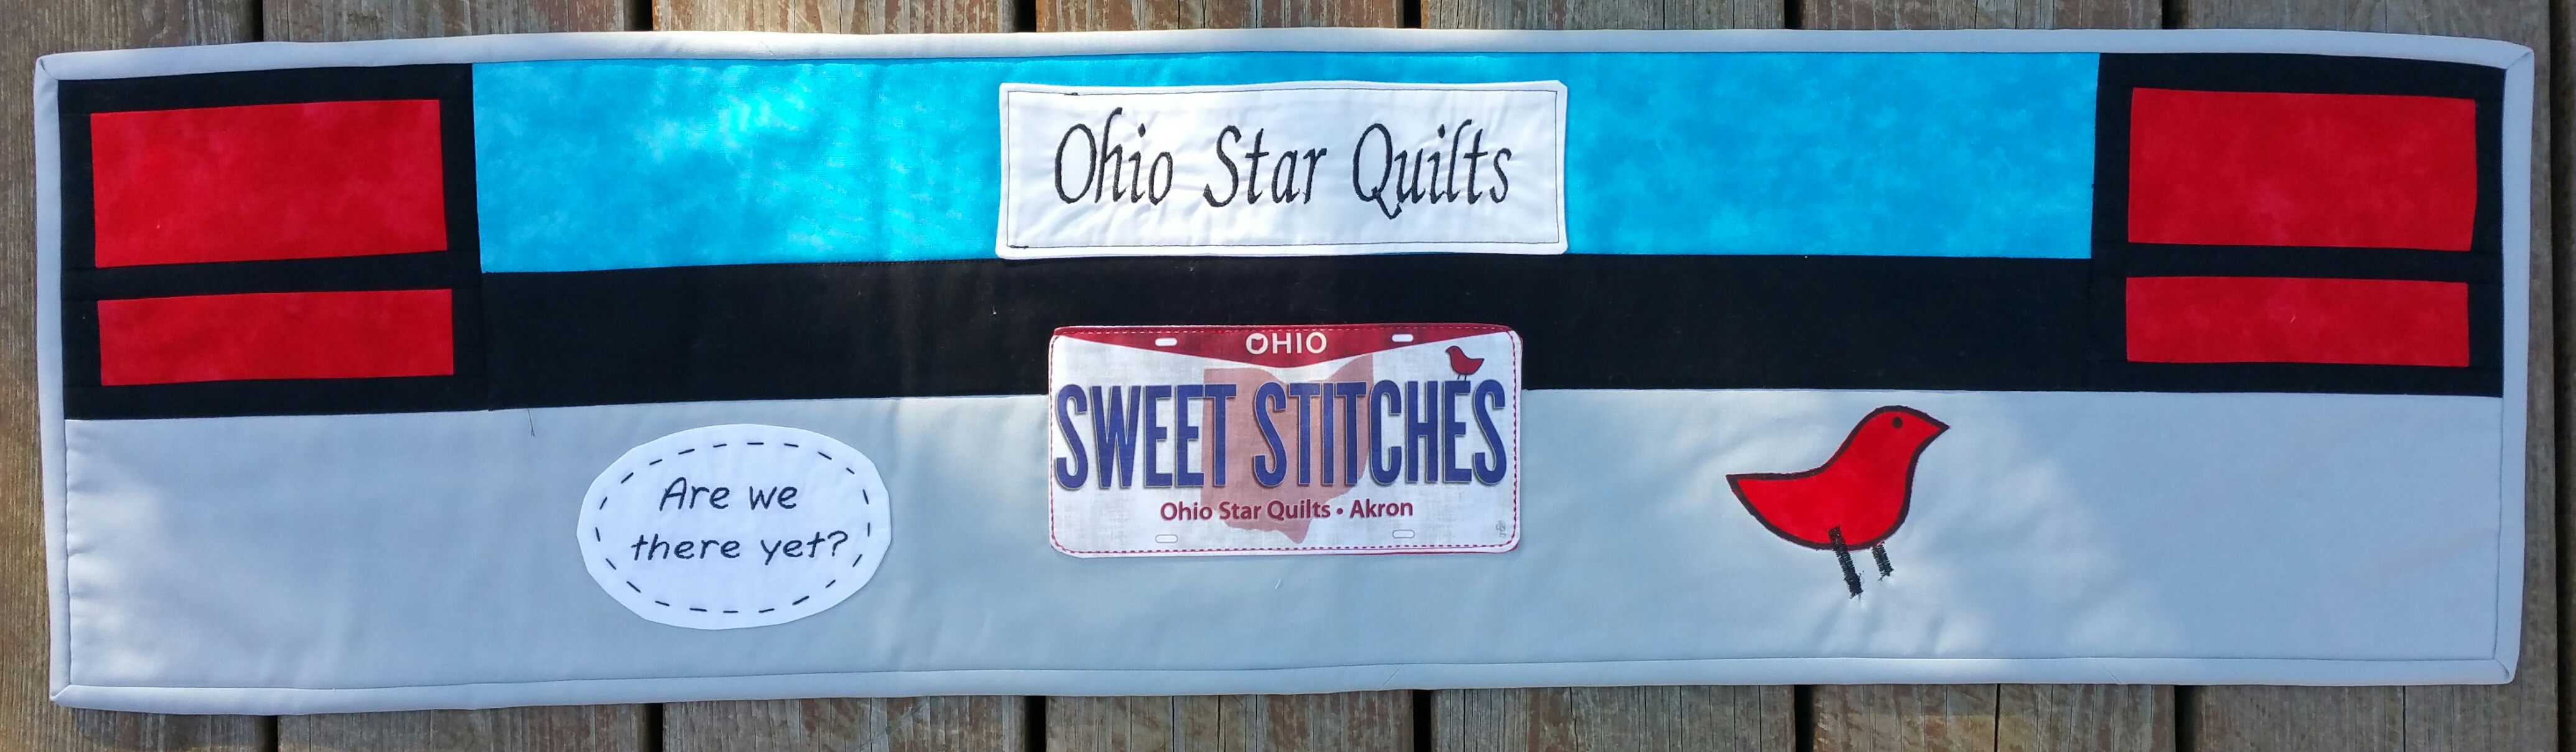 Ohio Star Quilts Akron Ohio S Premier Choice For Quality